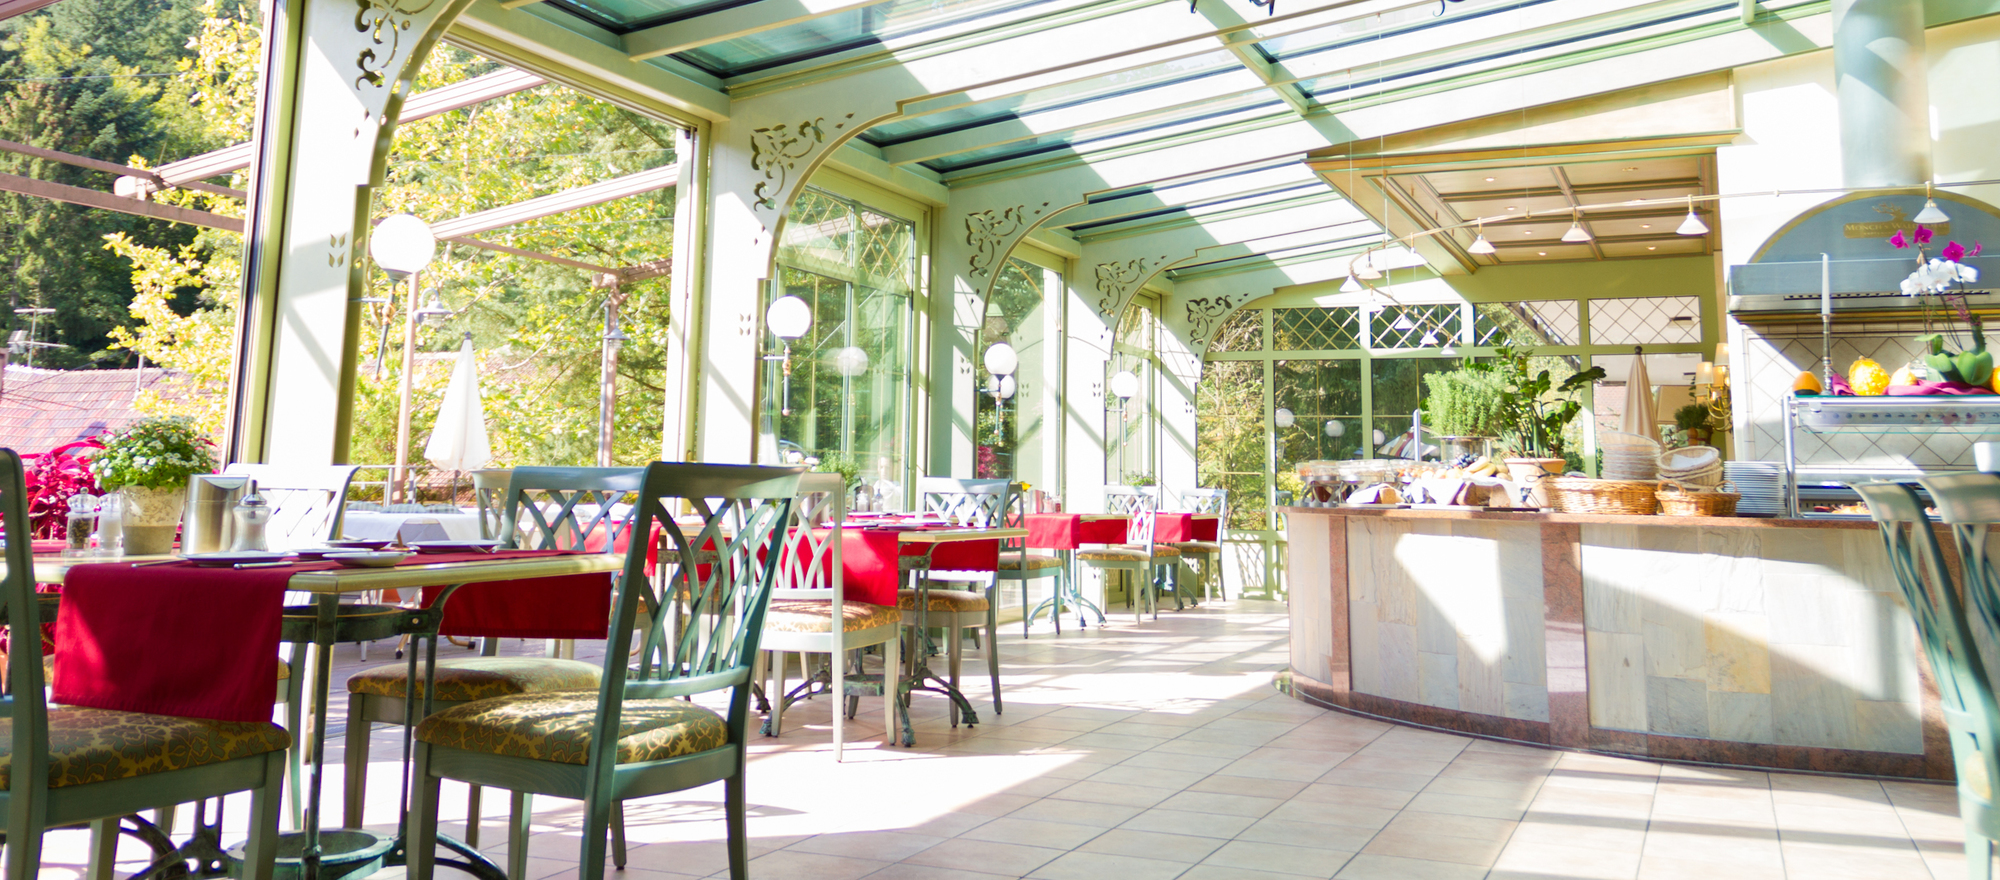 Daily breakfast buffet in the winter gardes at the Ringhotel Moenchs Waldhotel, 4-star hotel  in Unterreichenbach